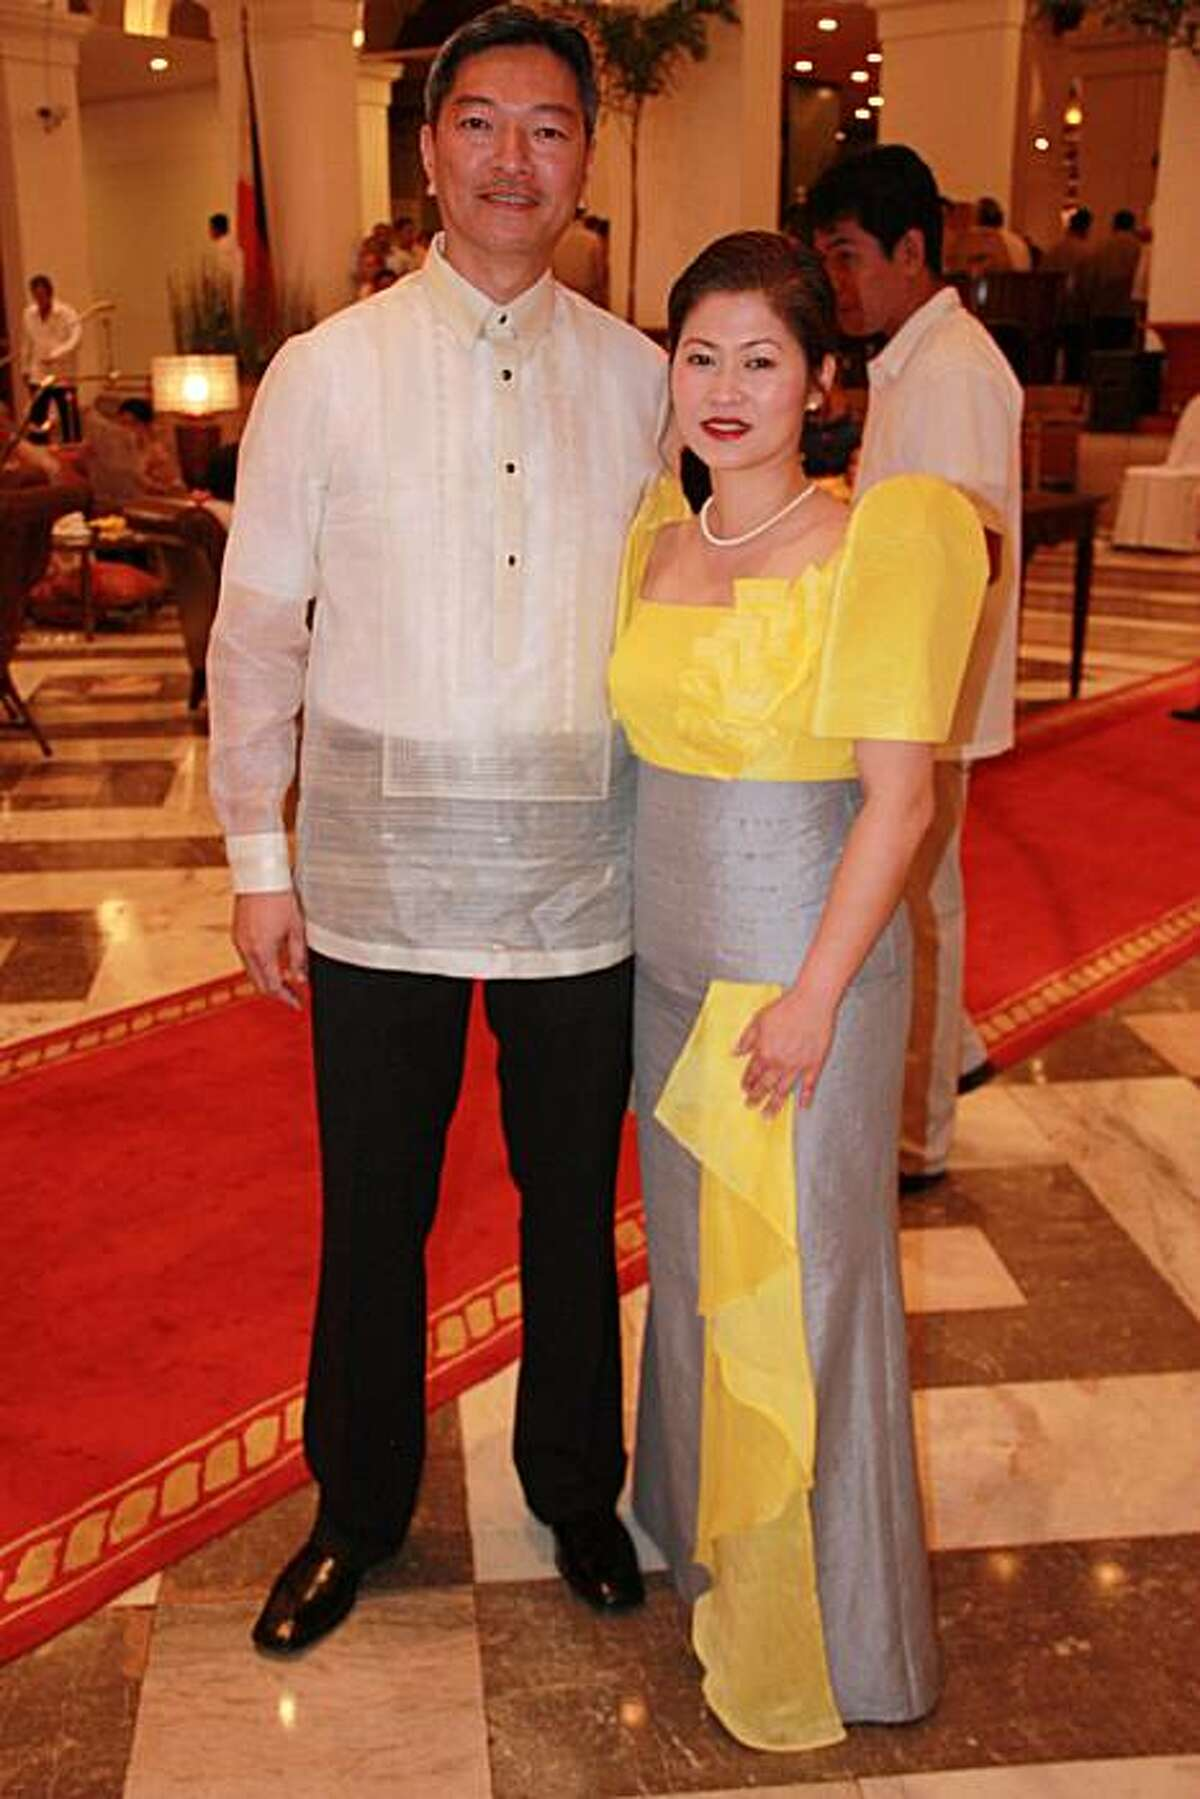 Wilson Ngo and Cherry Aw Young-Ngo of San Ramon, Calif., attended the inauguration of President Benigno Aquino III in Manila on June 30, 2010.